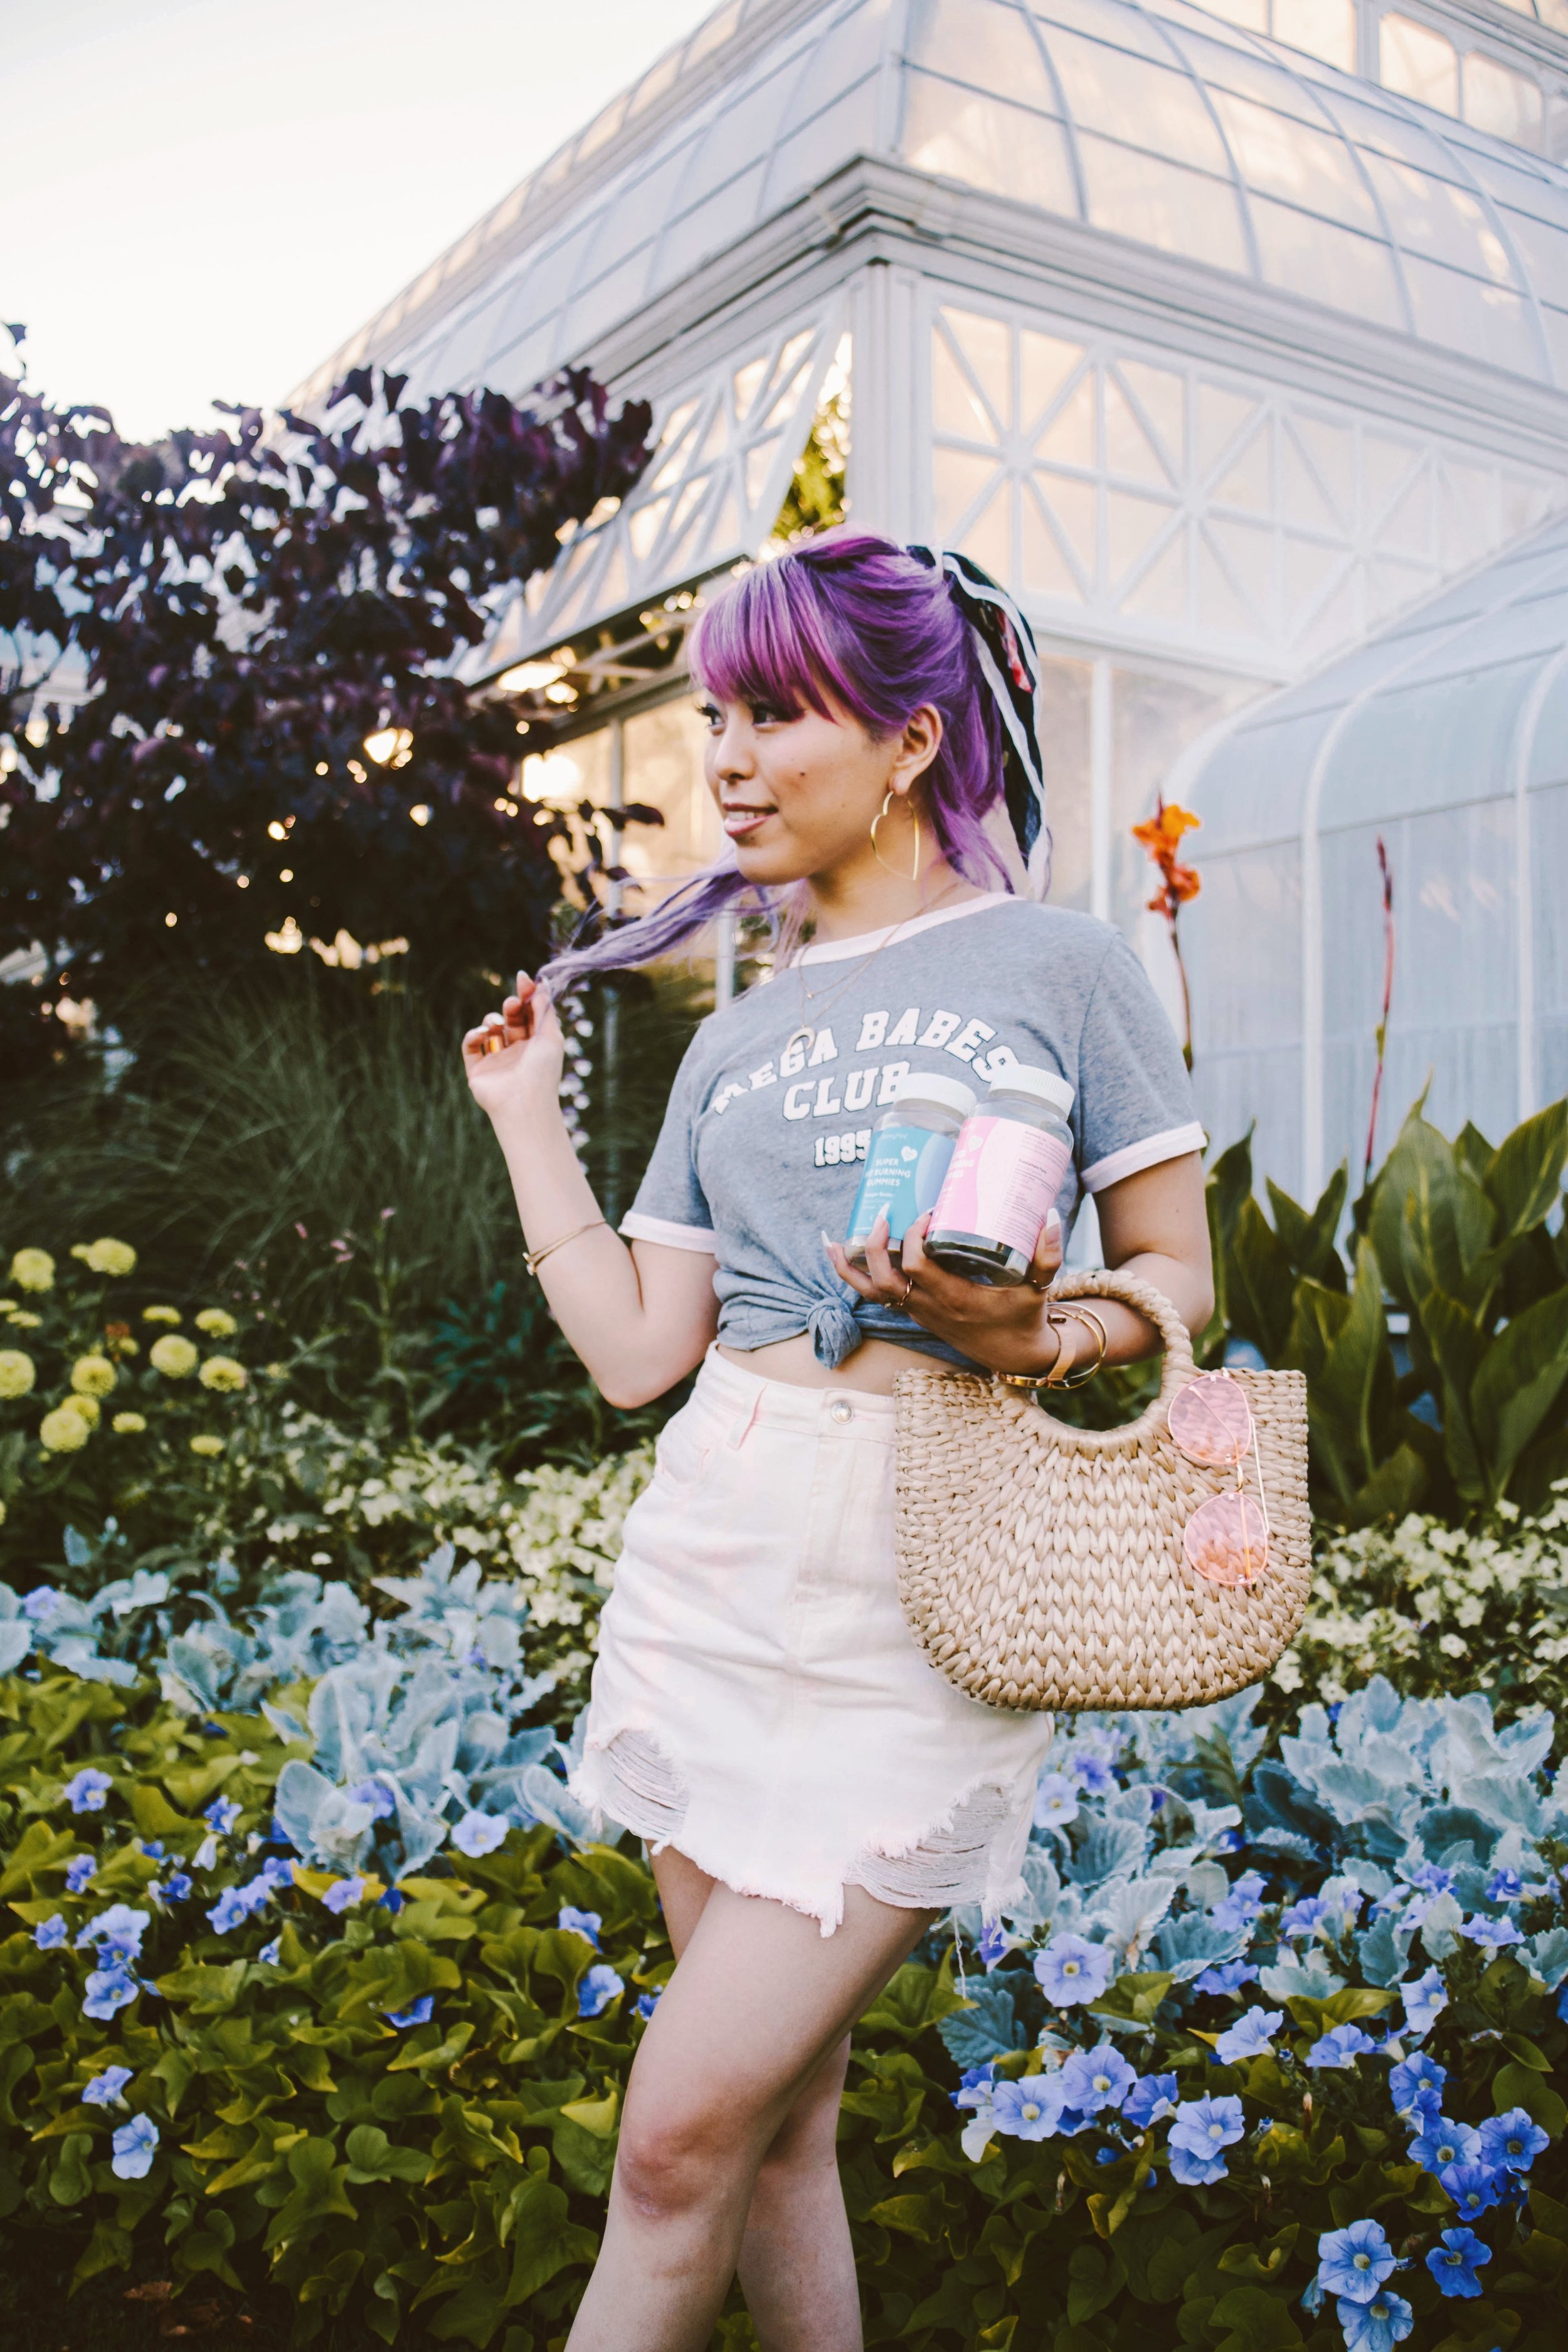 SkinnyMint Super Fat Burning Gummies_Purple Hair_Lifestyle_healthy-ootd-pony tail-summer-happy-supliment-fut burning-weight loss-style blogger-seattle fashion blogger-japanese-colored hair 7